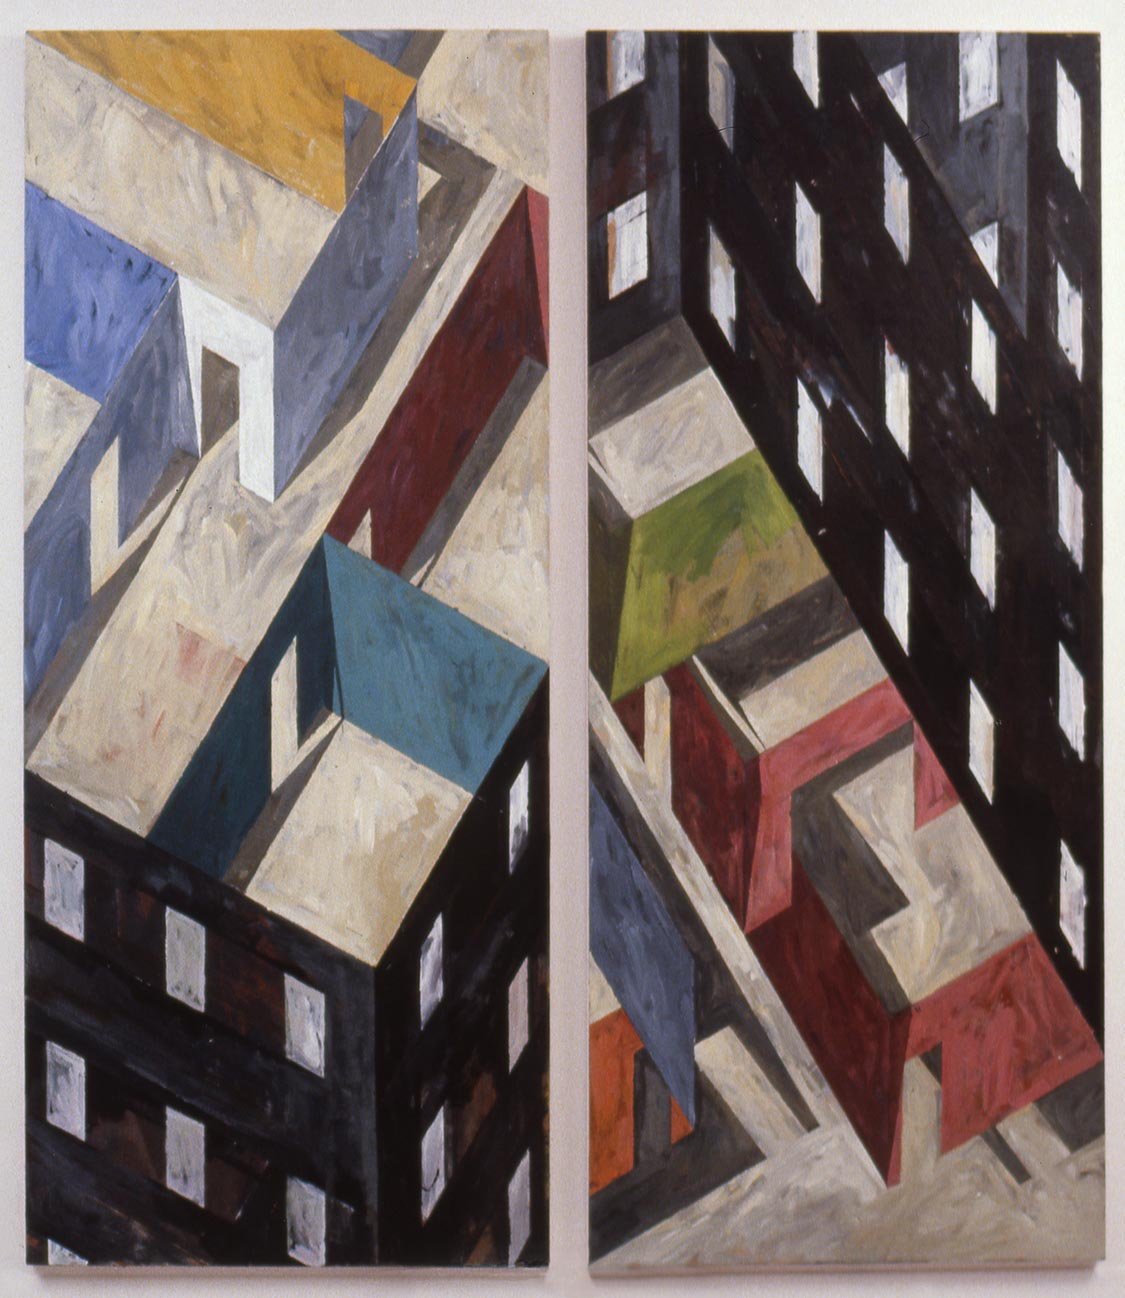 Appartements (Apartments), 1990